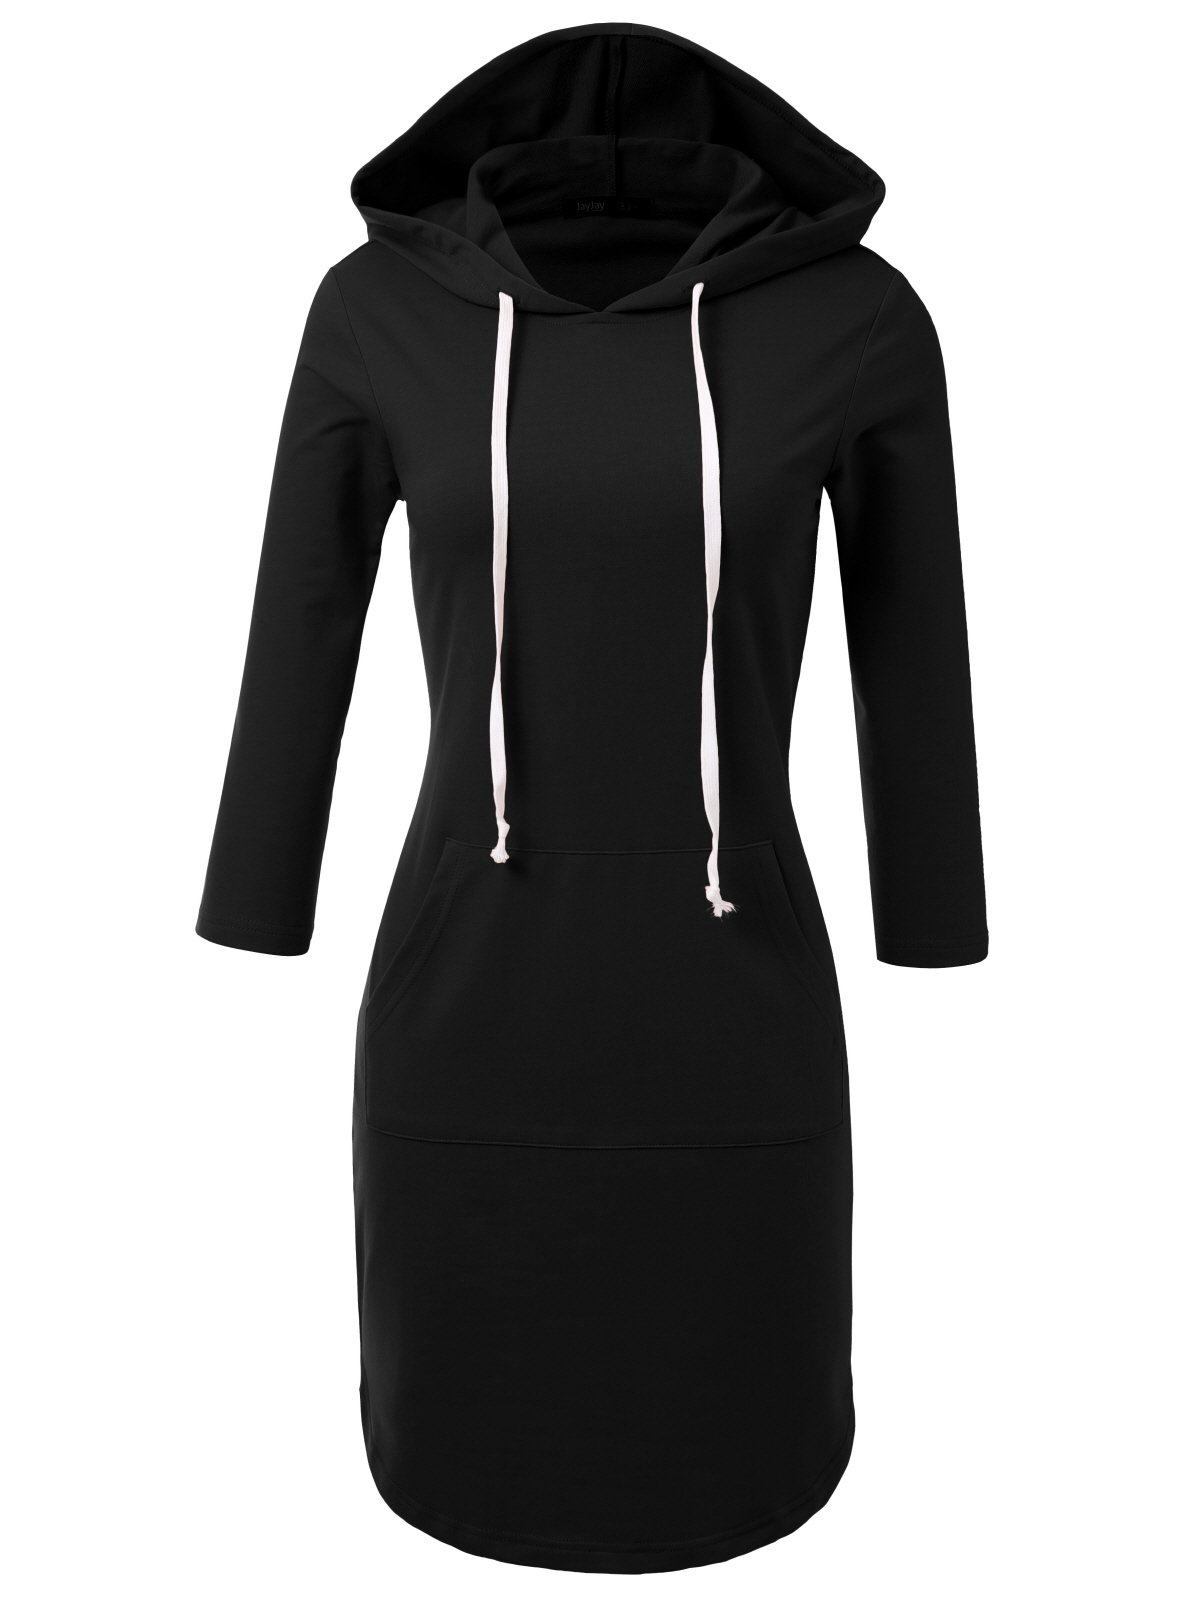 JayJay Casual Active V-Neck Pullover Lightweight Jersey Long Sleeve Hoodie Midi Dress with Kangaroo Pocket,Black,2XL